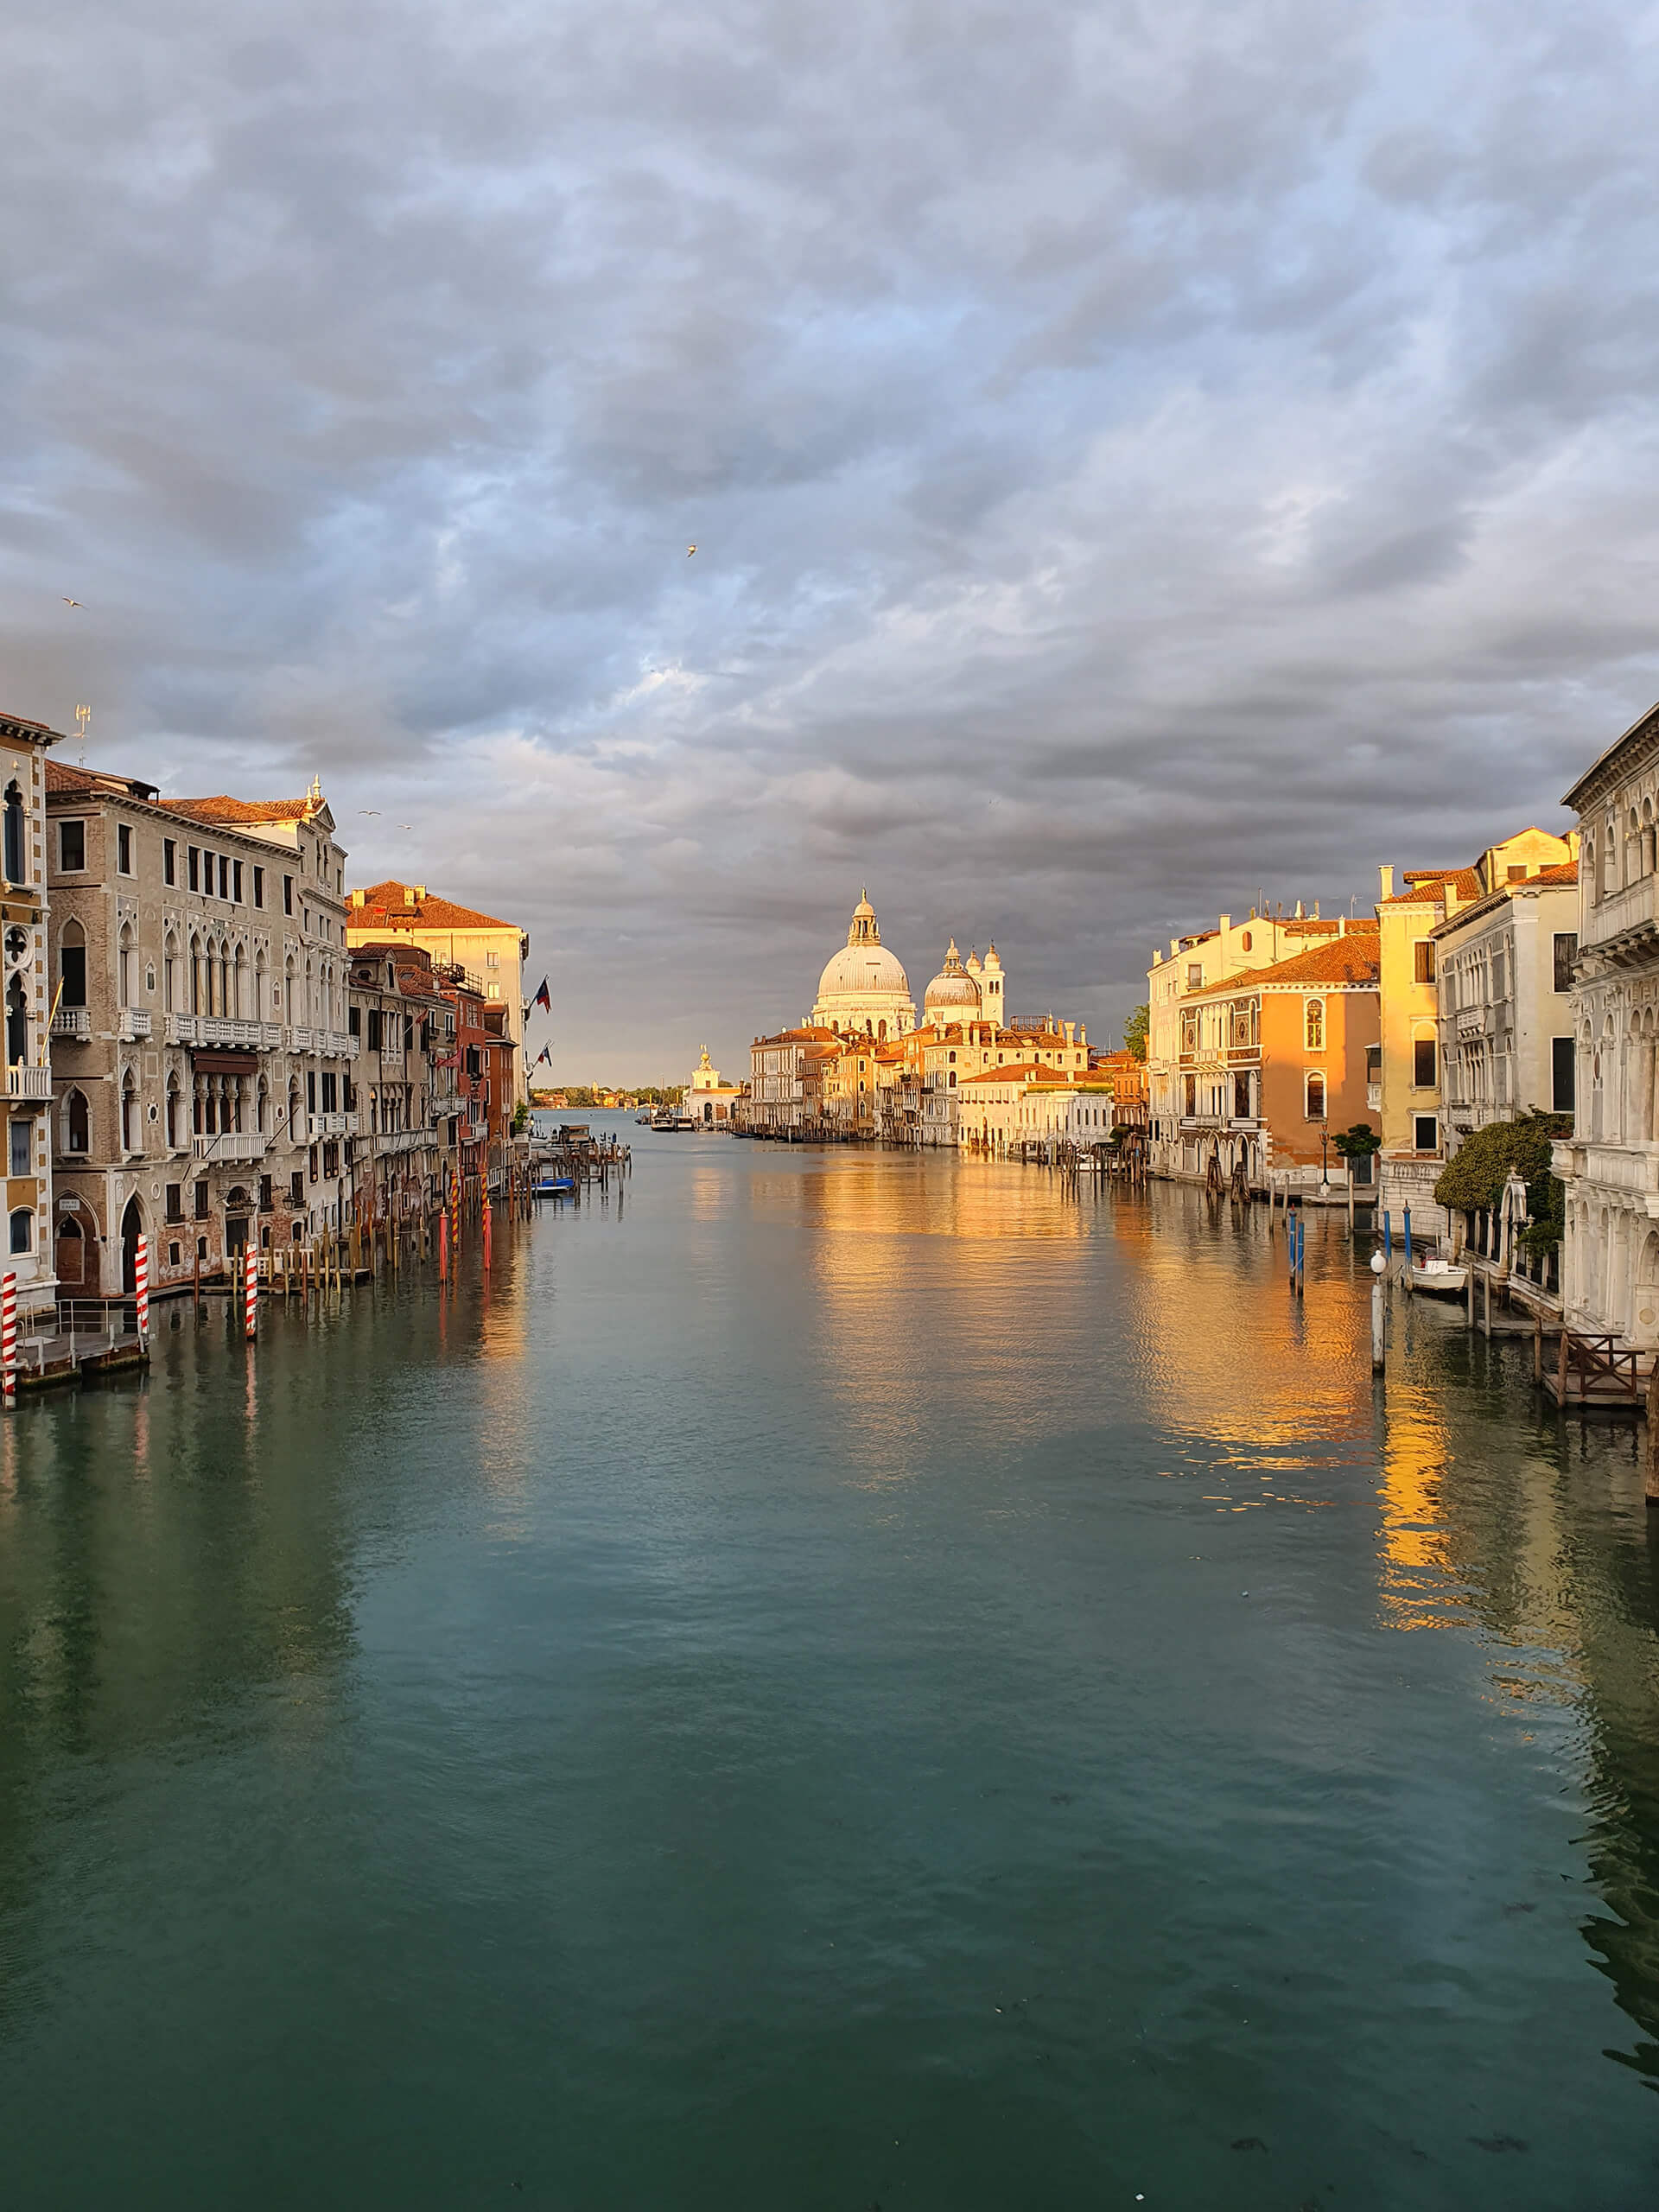 A quiet moment along the grand canal | Venice reopens post COVID-19 lockdown | STIRworld